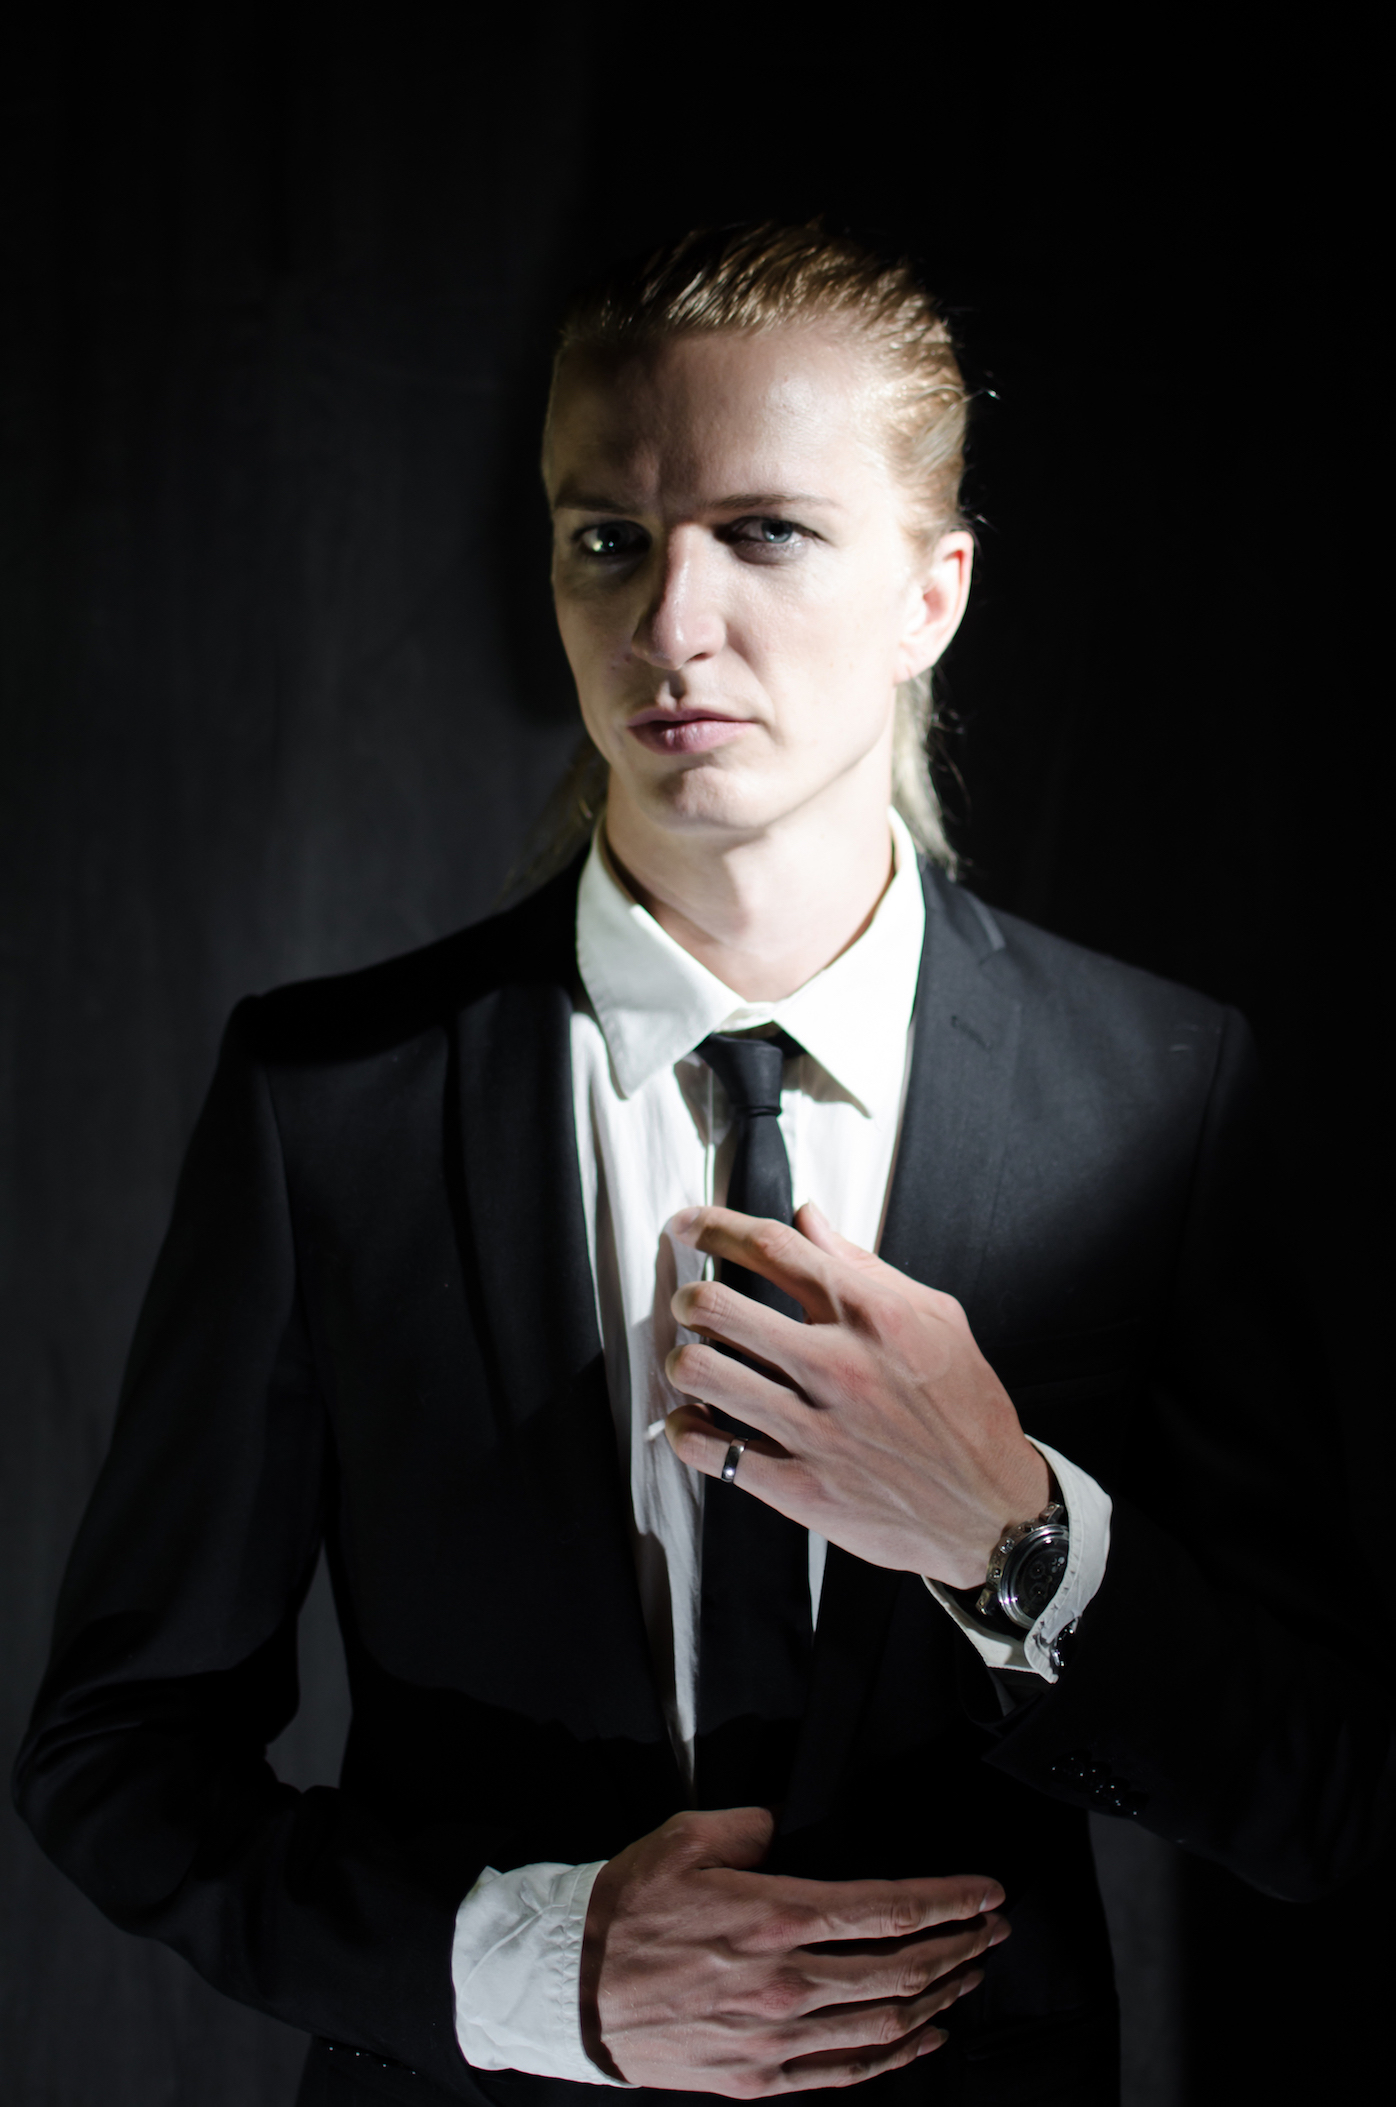 Silver, Kai Silver at your service as your secret male escort